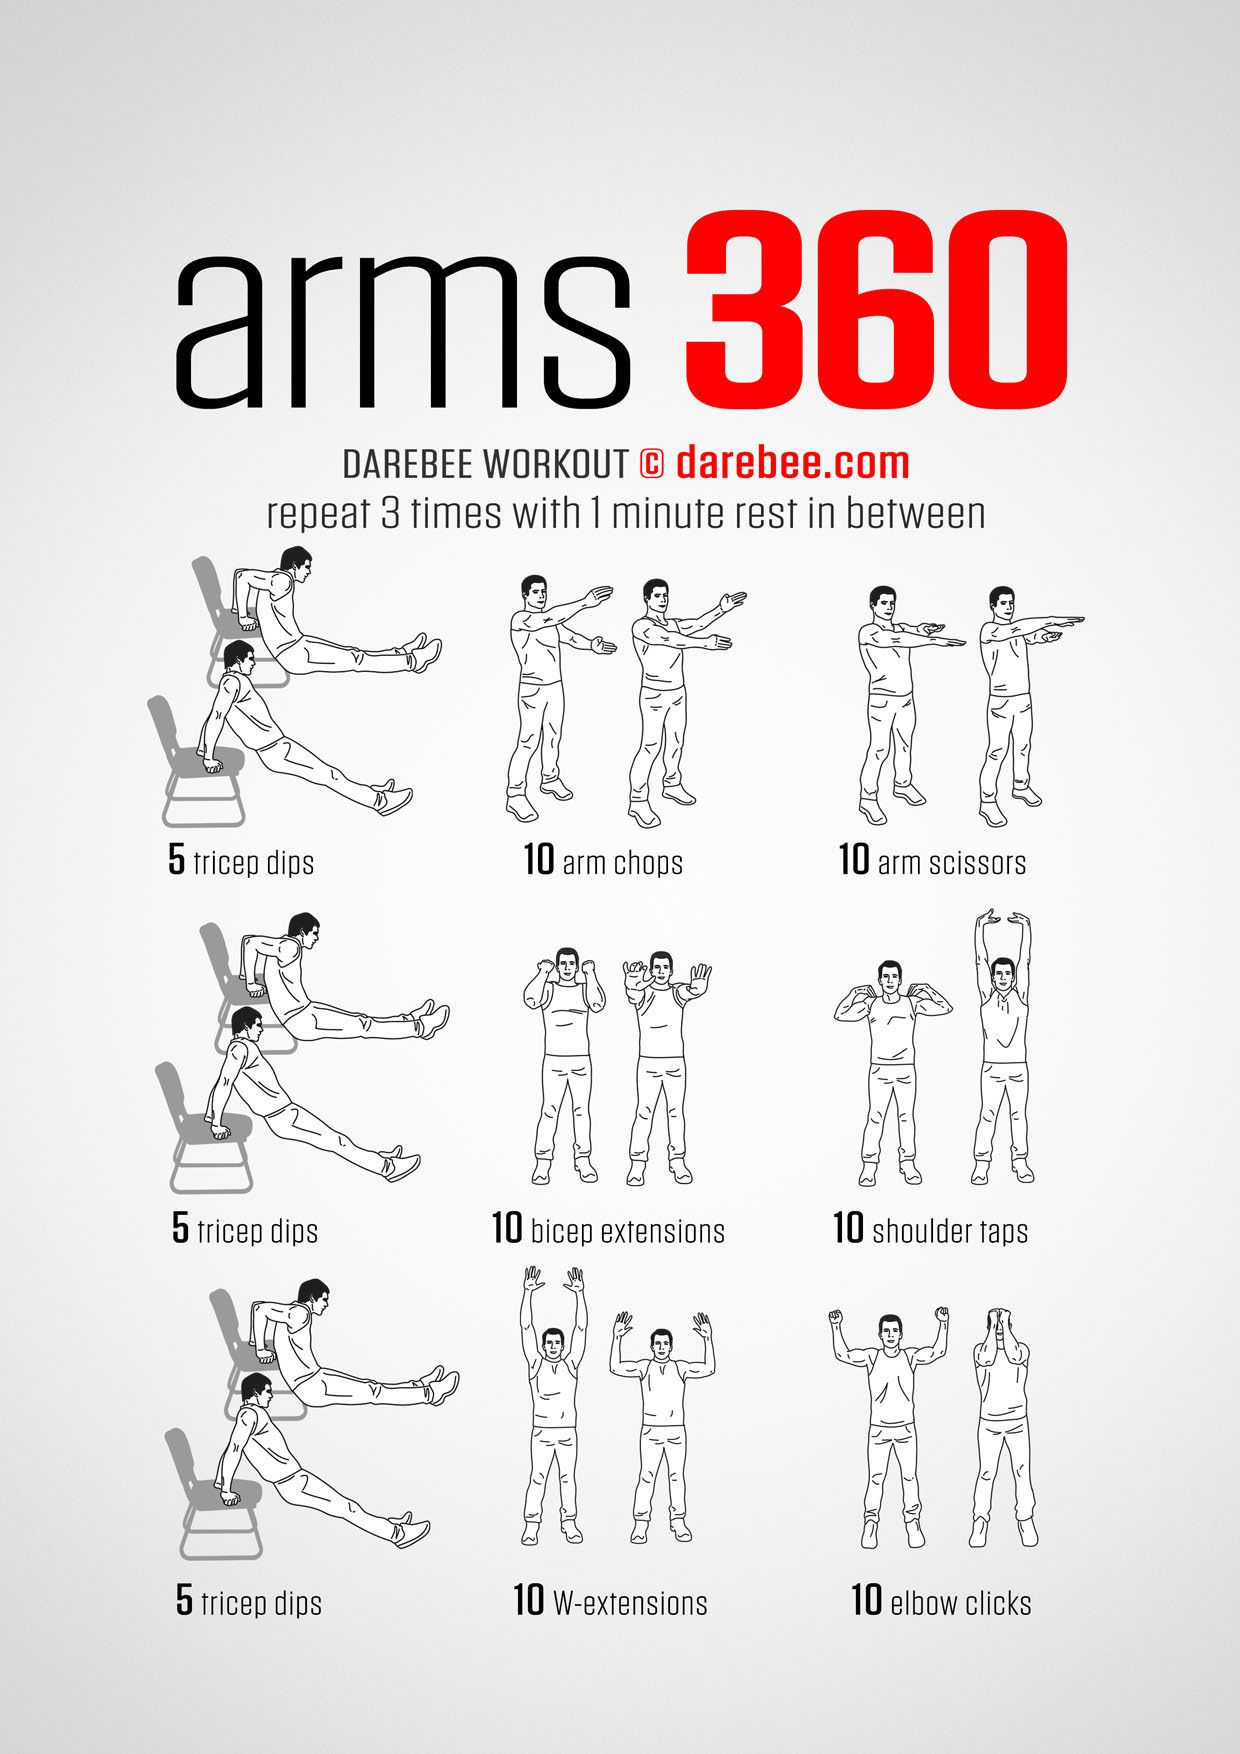 Try This Easy Workout At Your Desk In 2020 Workout Routine For Men Abs Workout Routines Arm Workouts At Home